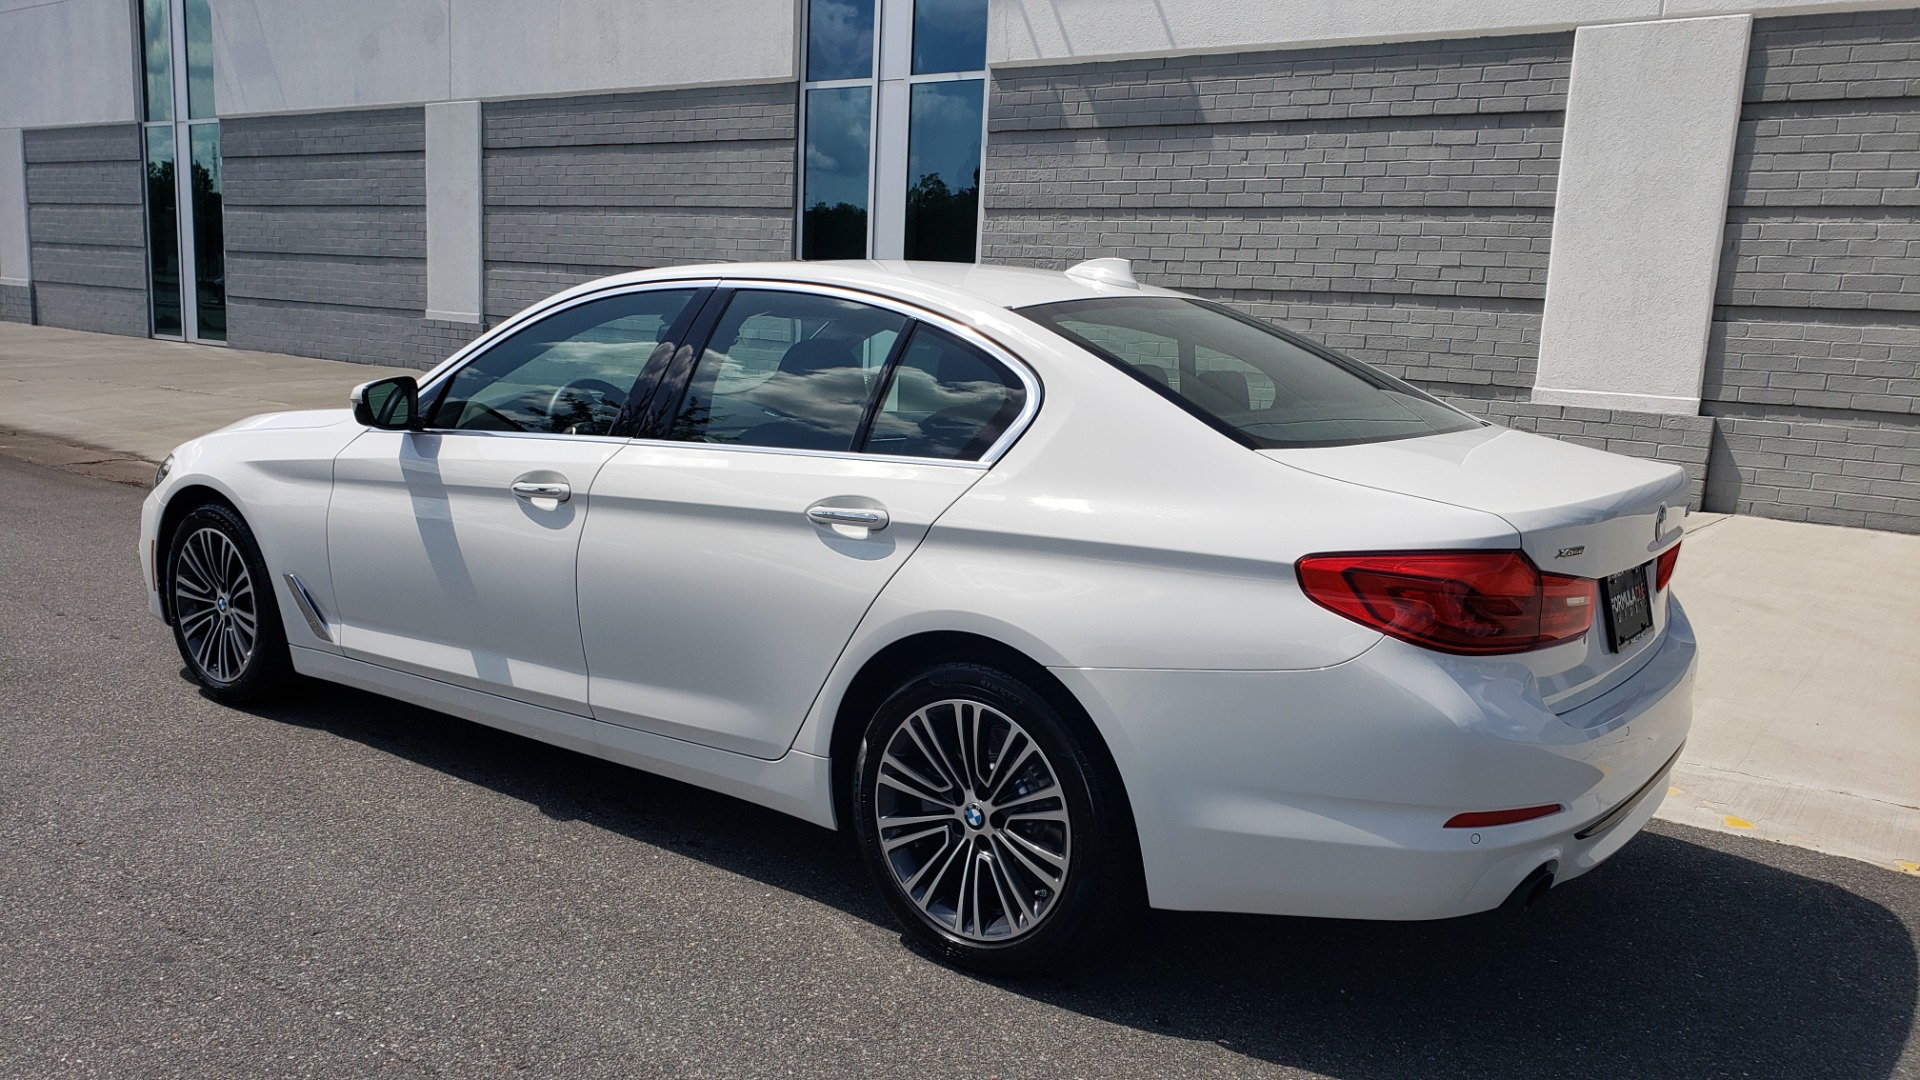 Used 2018 BMW 5 SERIES 530I XDRIVE PREMIUM / PARK ASST / NAV / SUNROOF / REARIEW for sale $37,795 at Formula Imports in Charlotte NC 28227 6